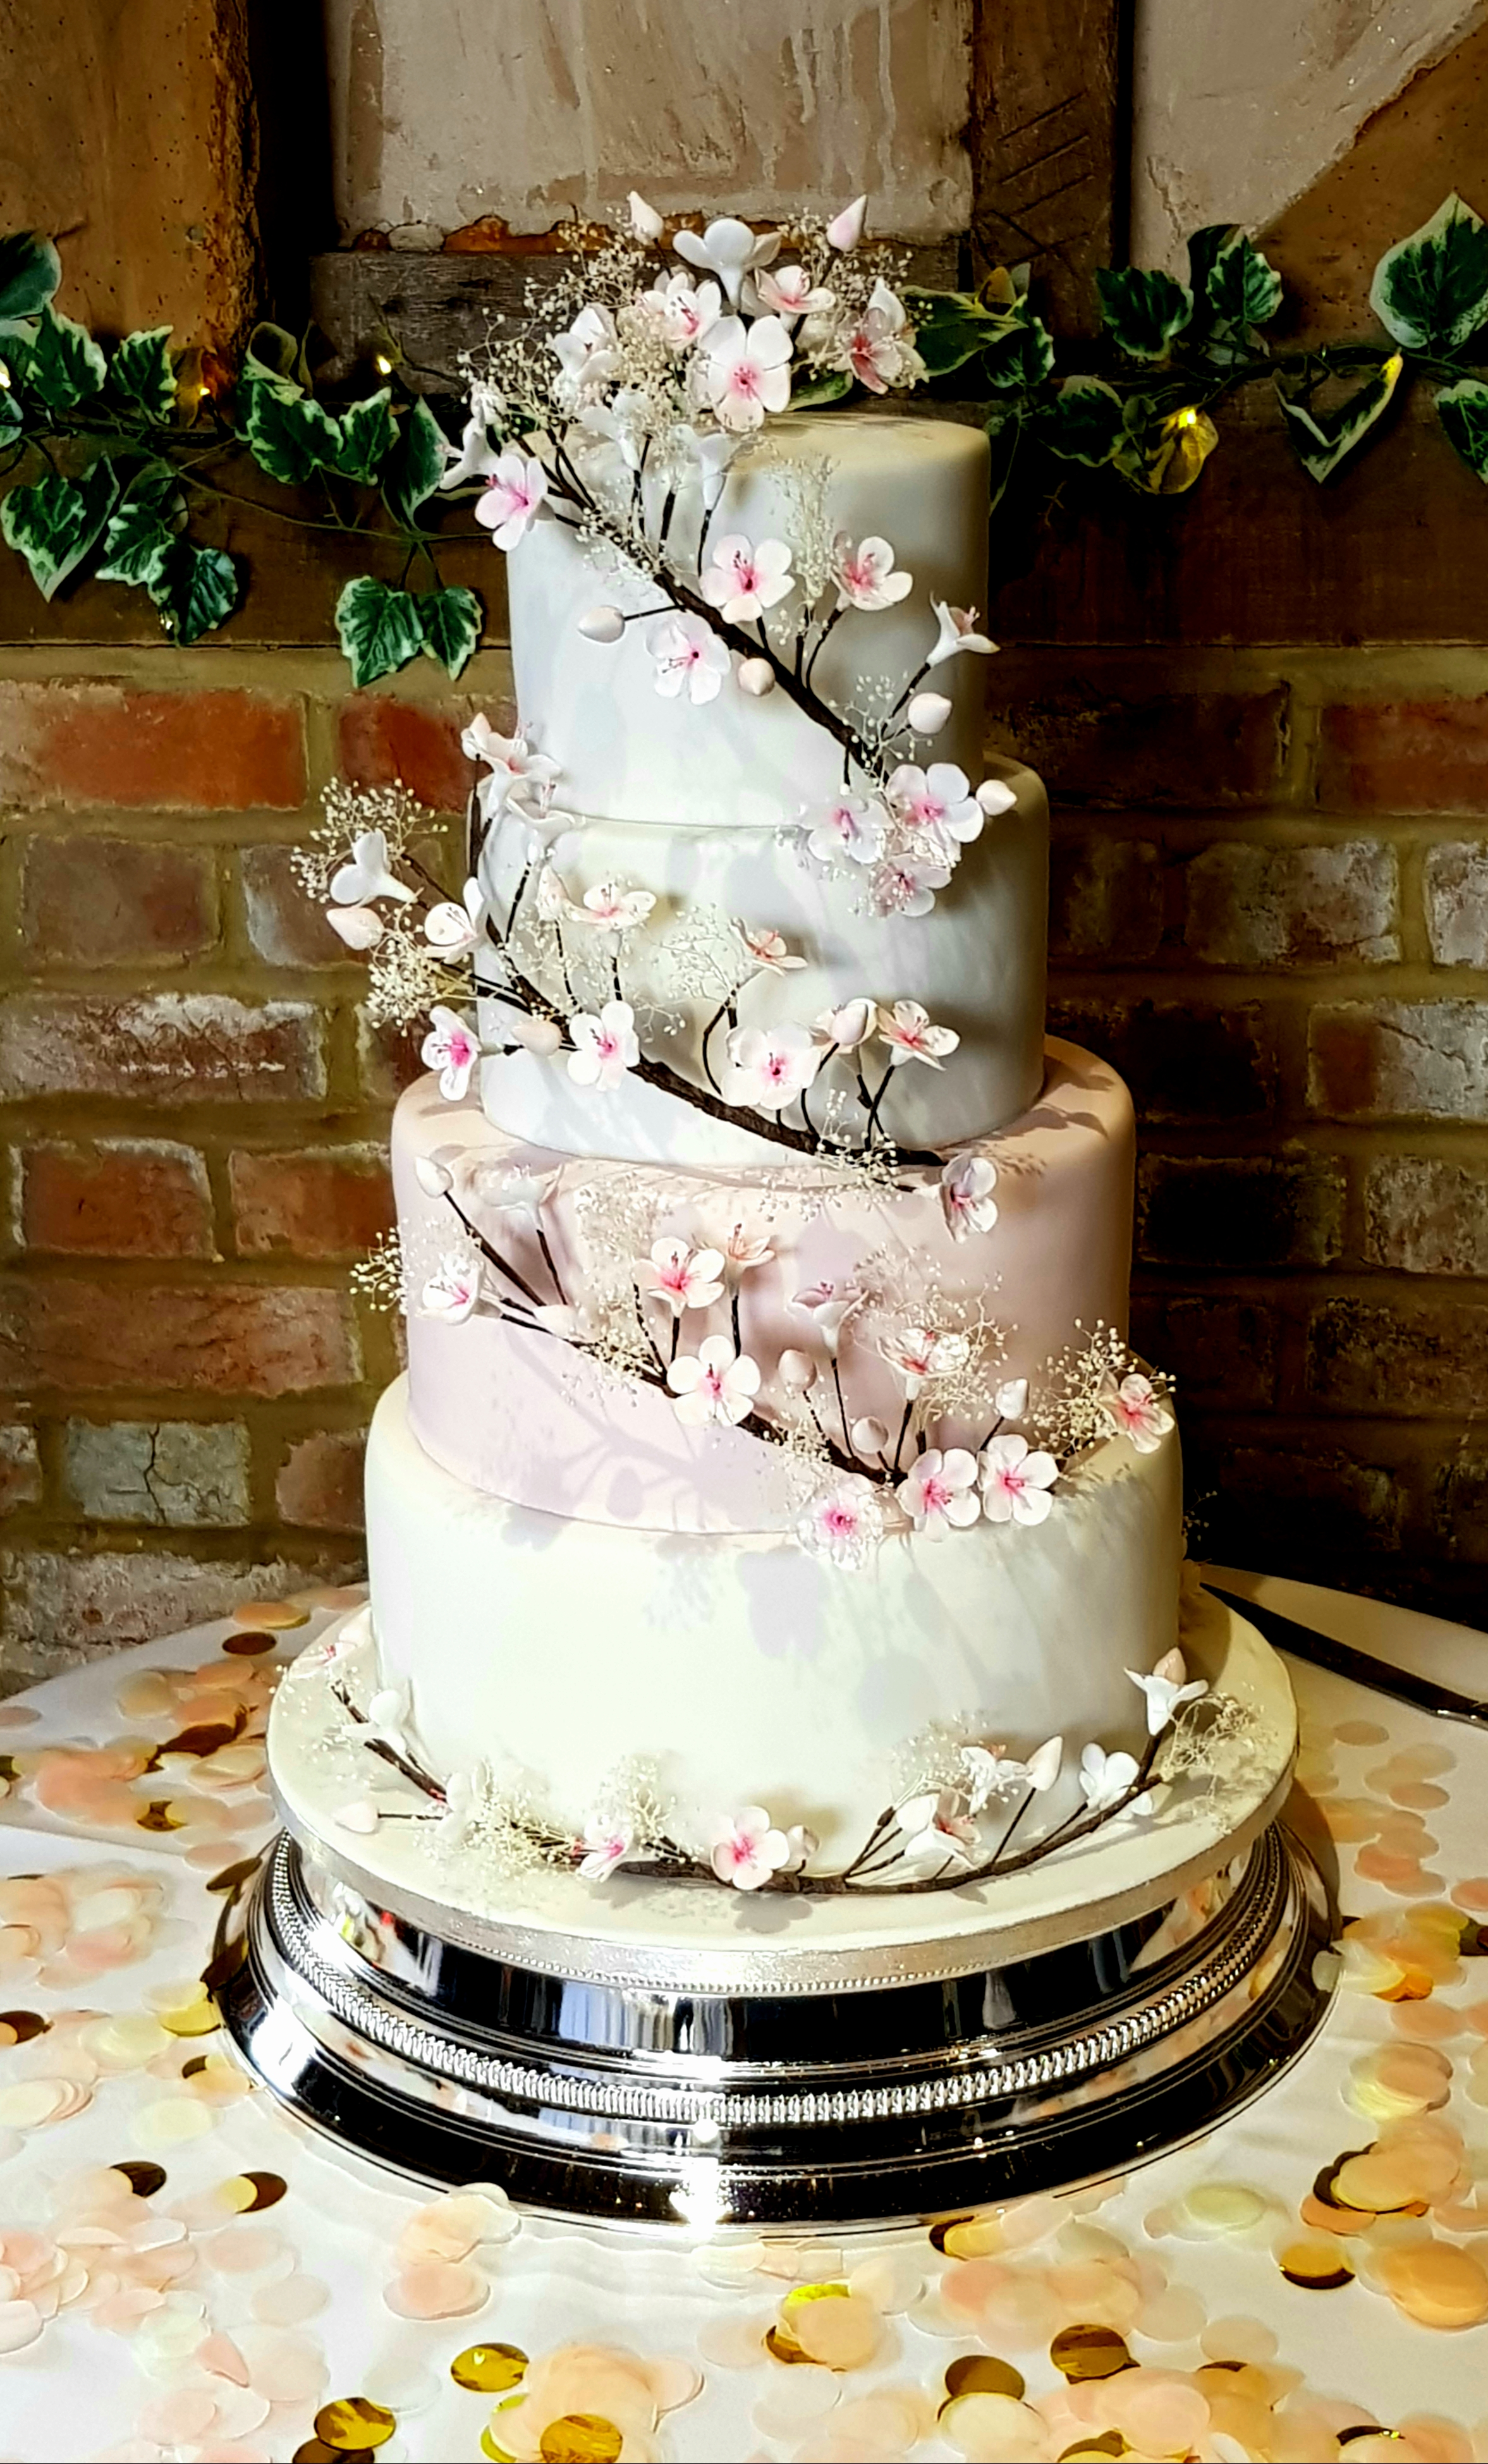 4 tier wedding cake decorated with white icing and wild orchids